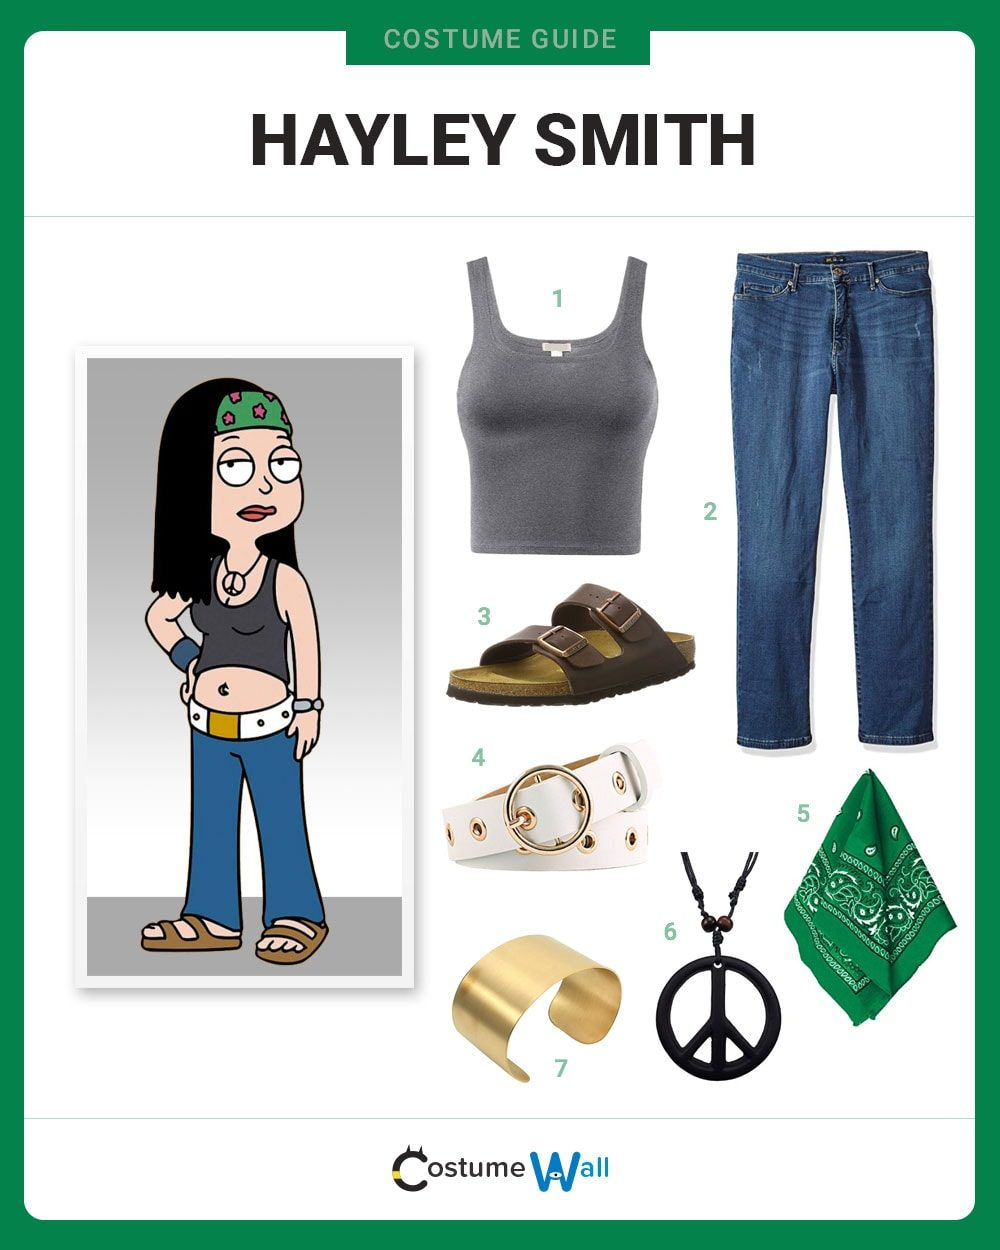 Hayley Smith Costume Guide